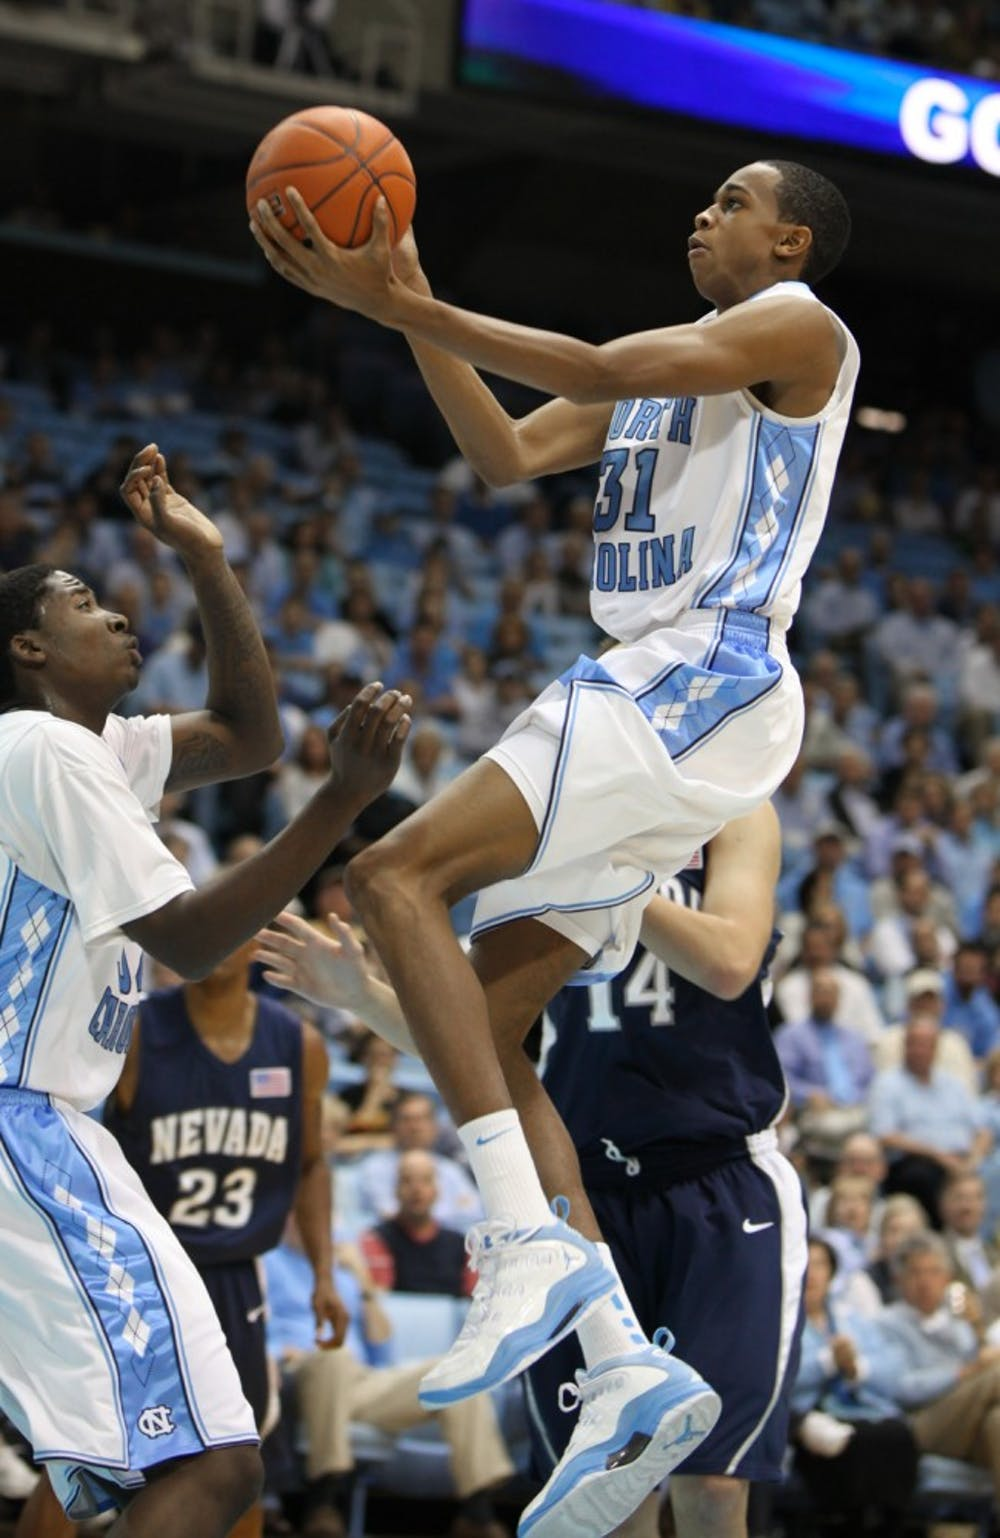 NIT loosens up Tar Heels